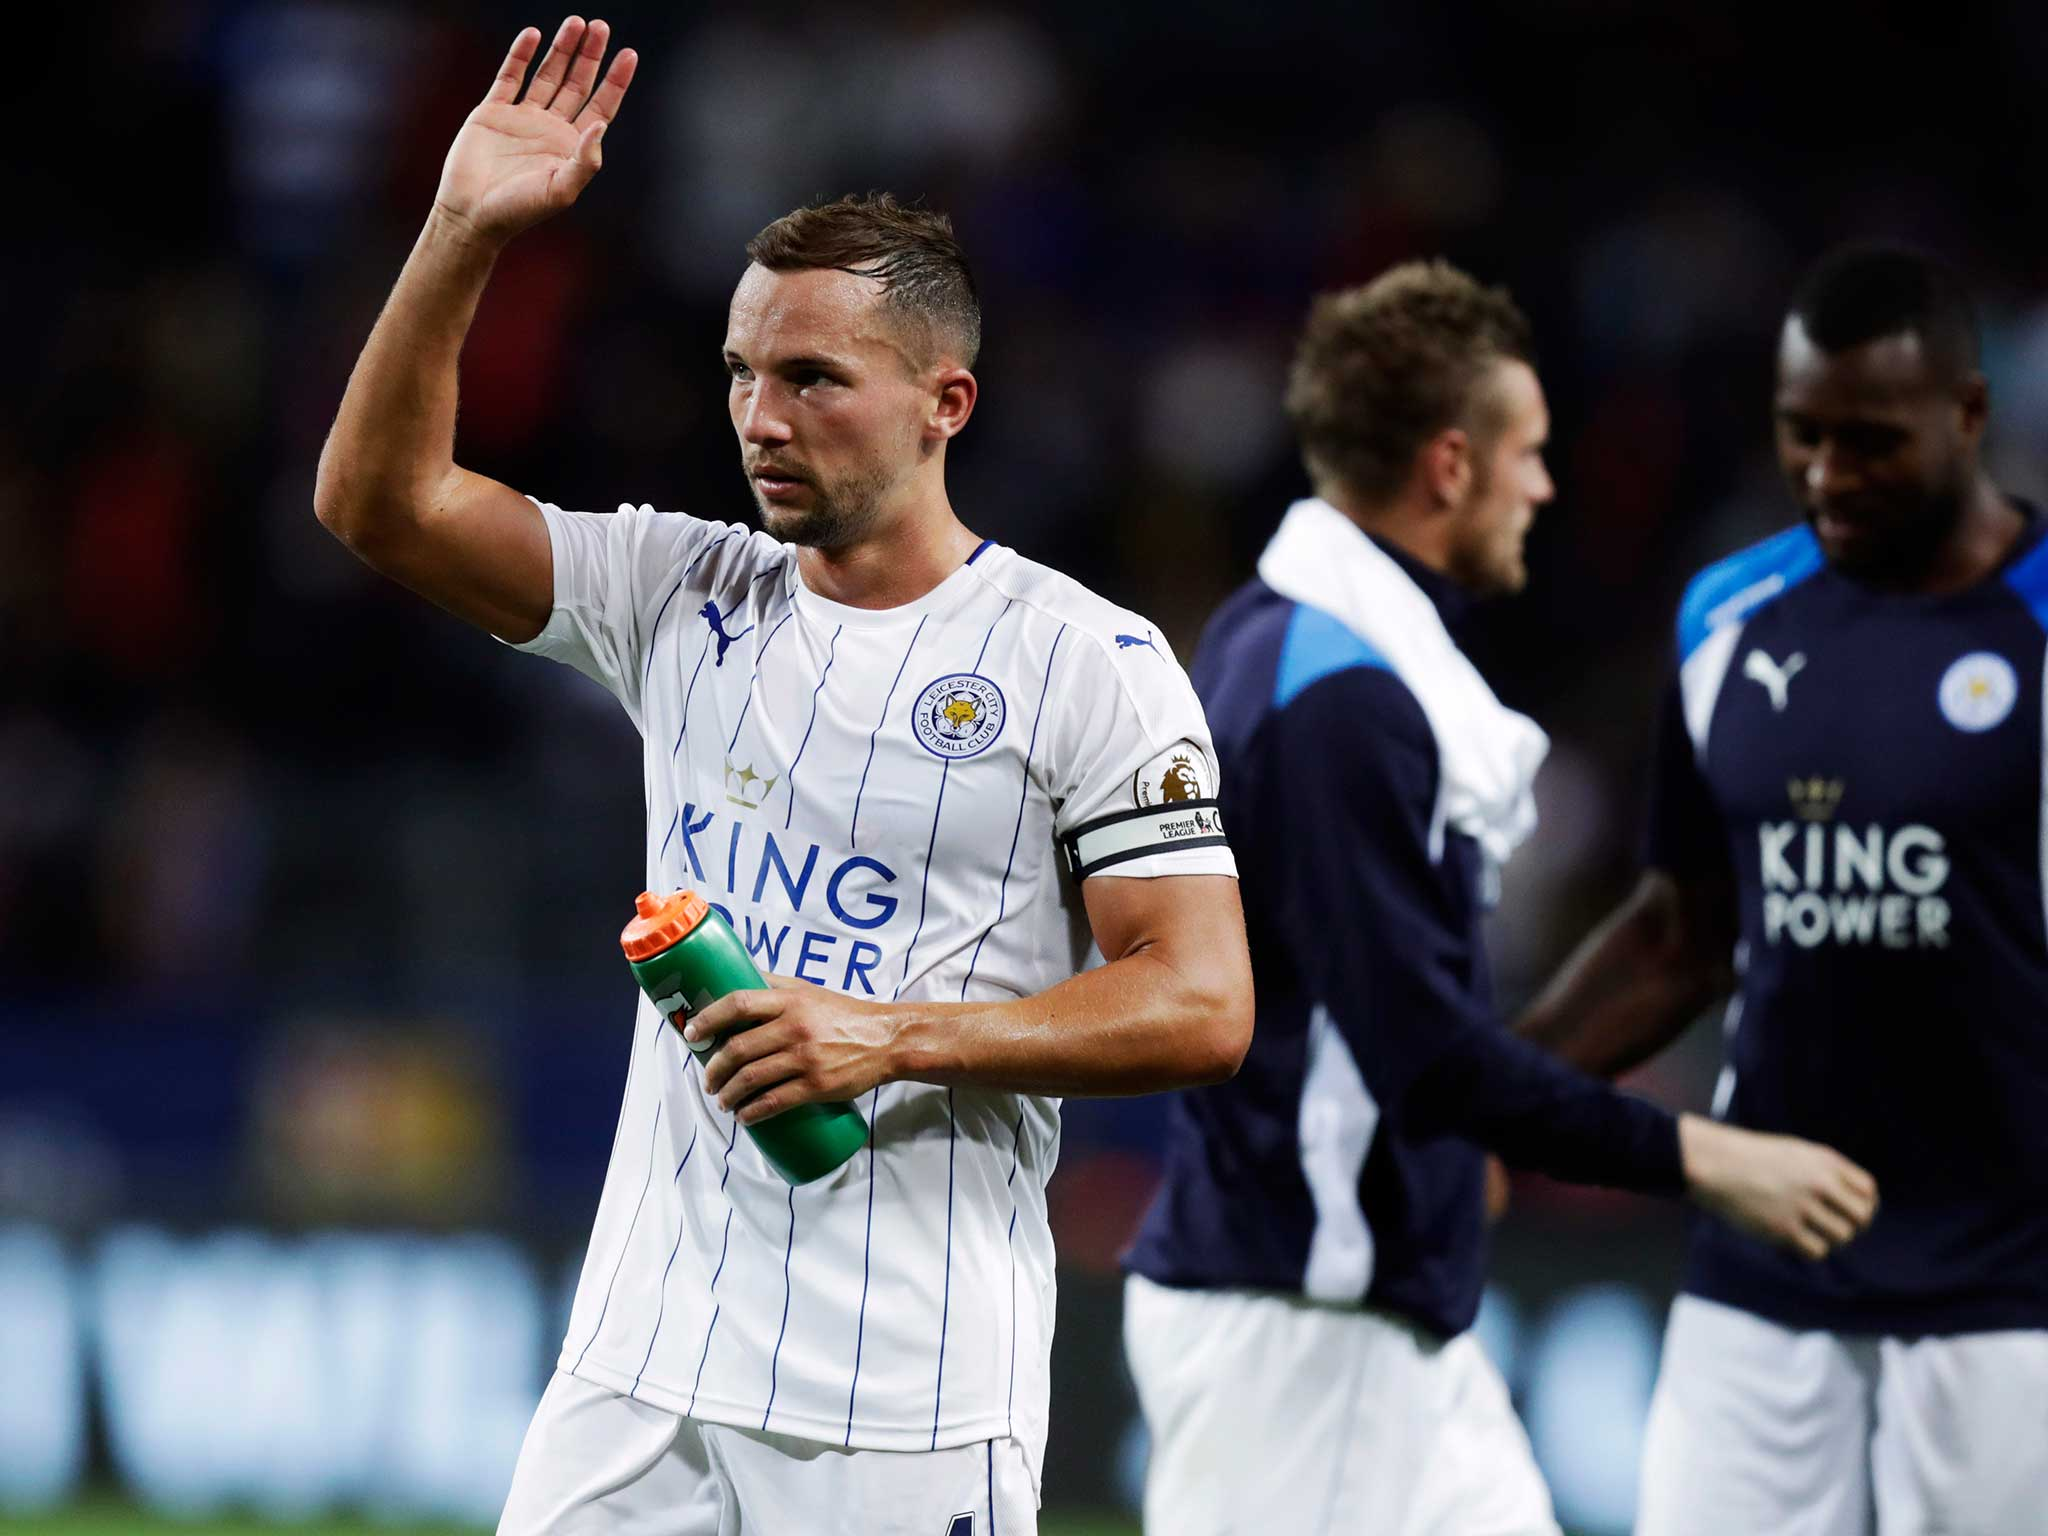 Leicester City news: Danny Drinkwater signs new five-year contract with Premier League champions